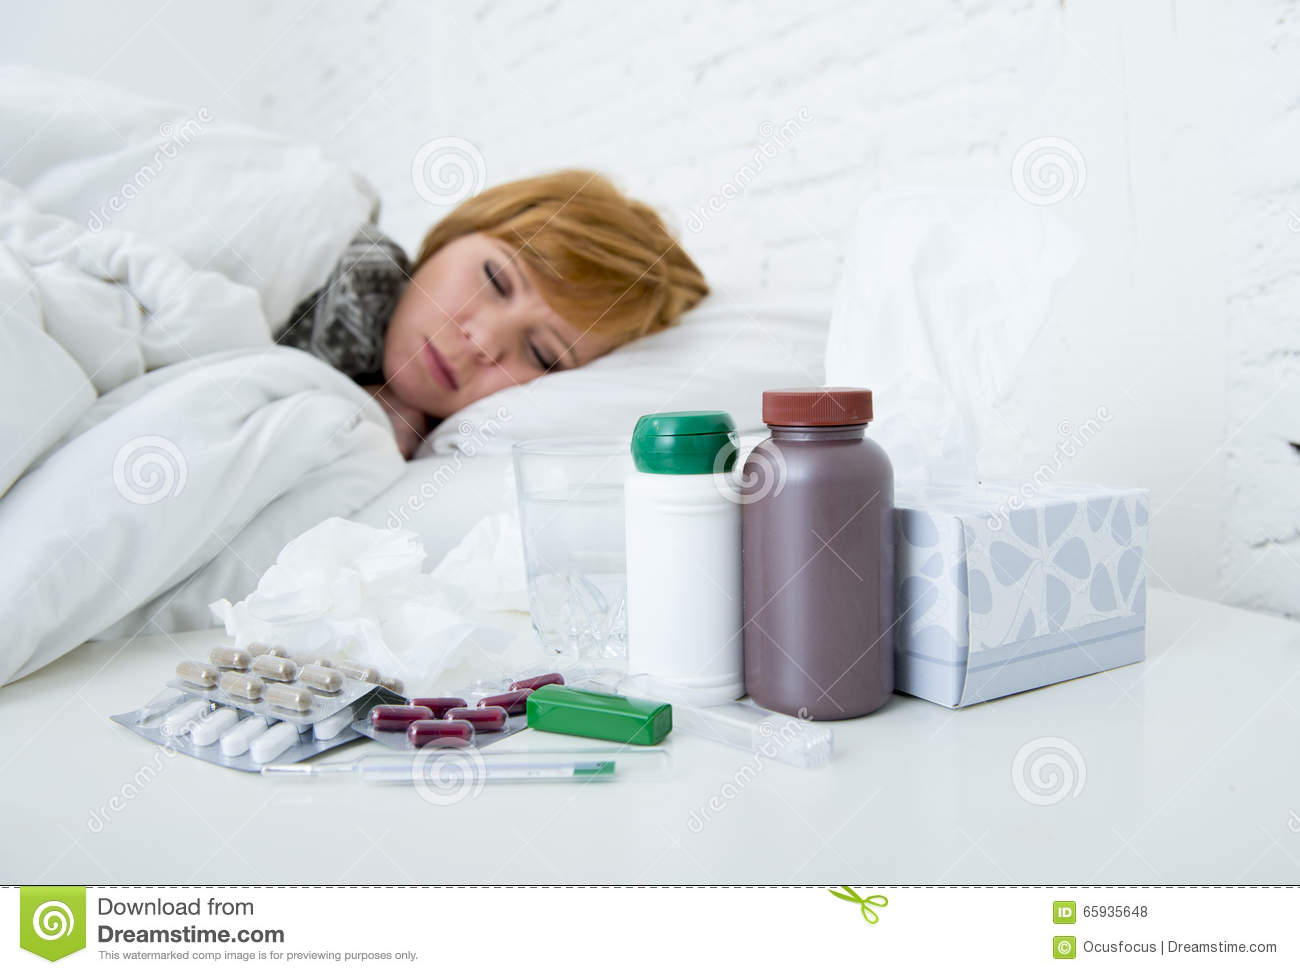 photo Are cold meds dangerous for very young kids